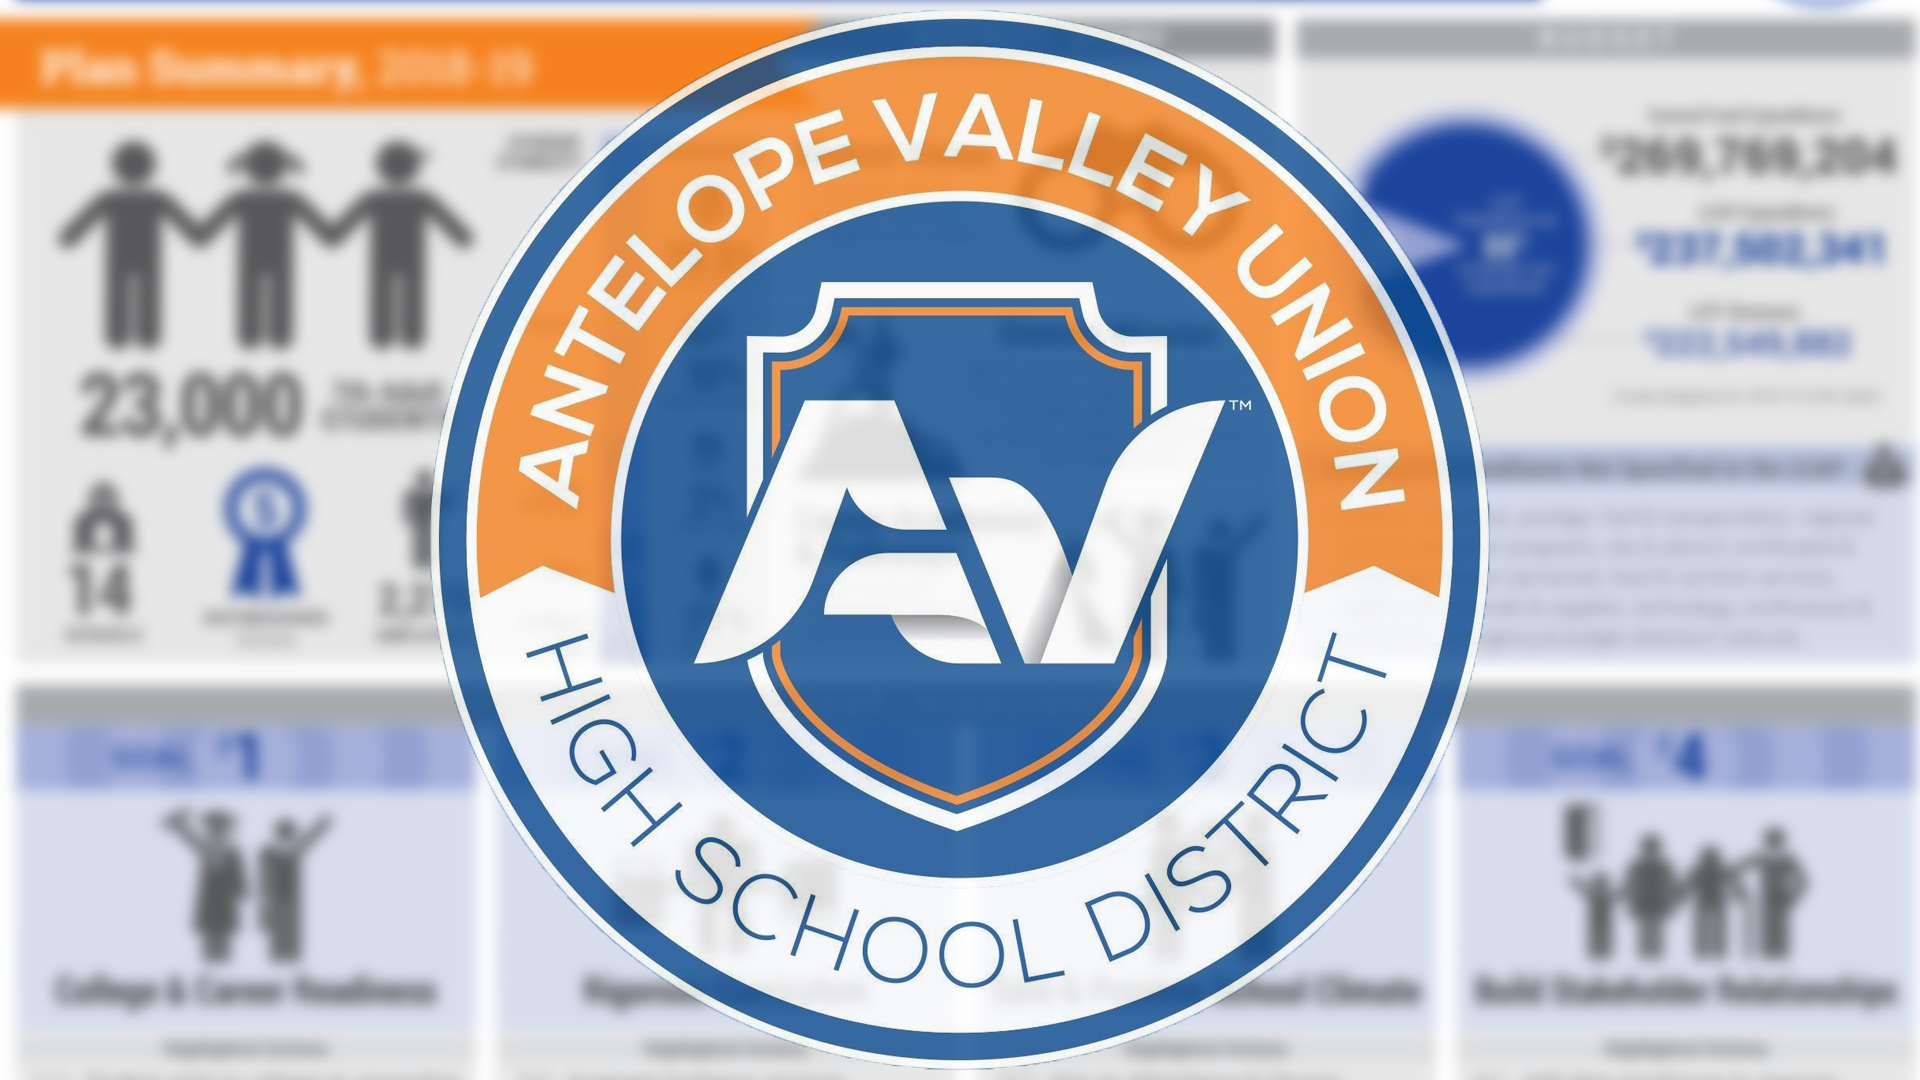 AV School District.png